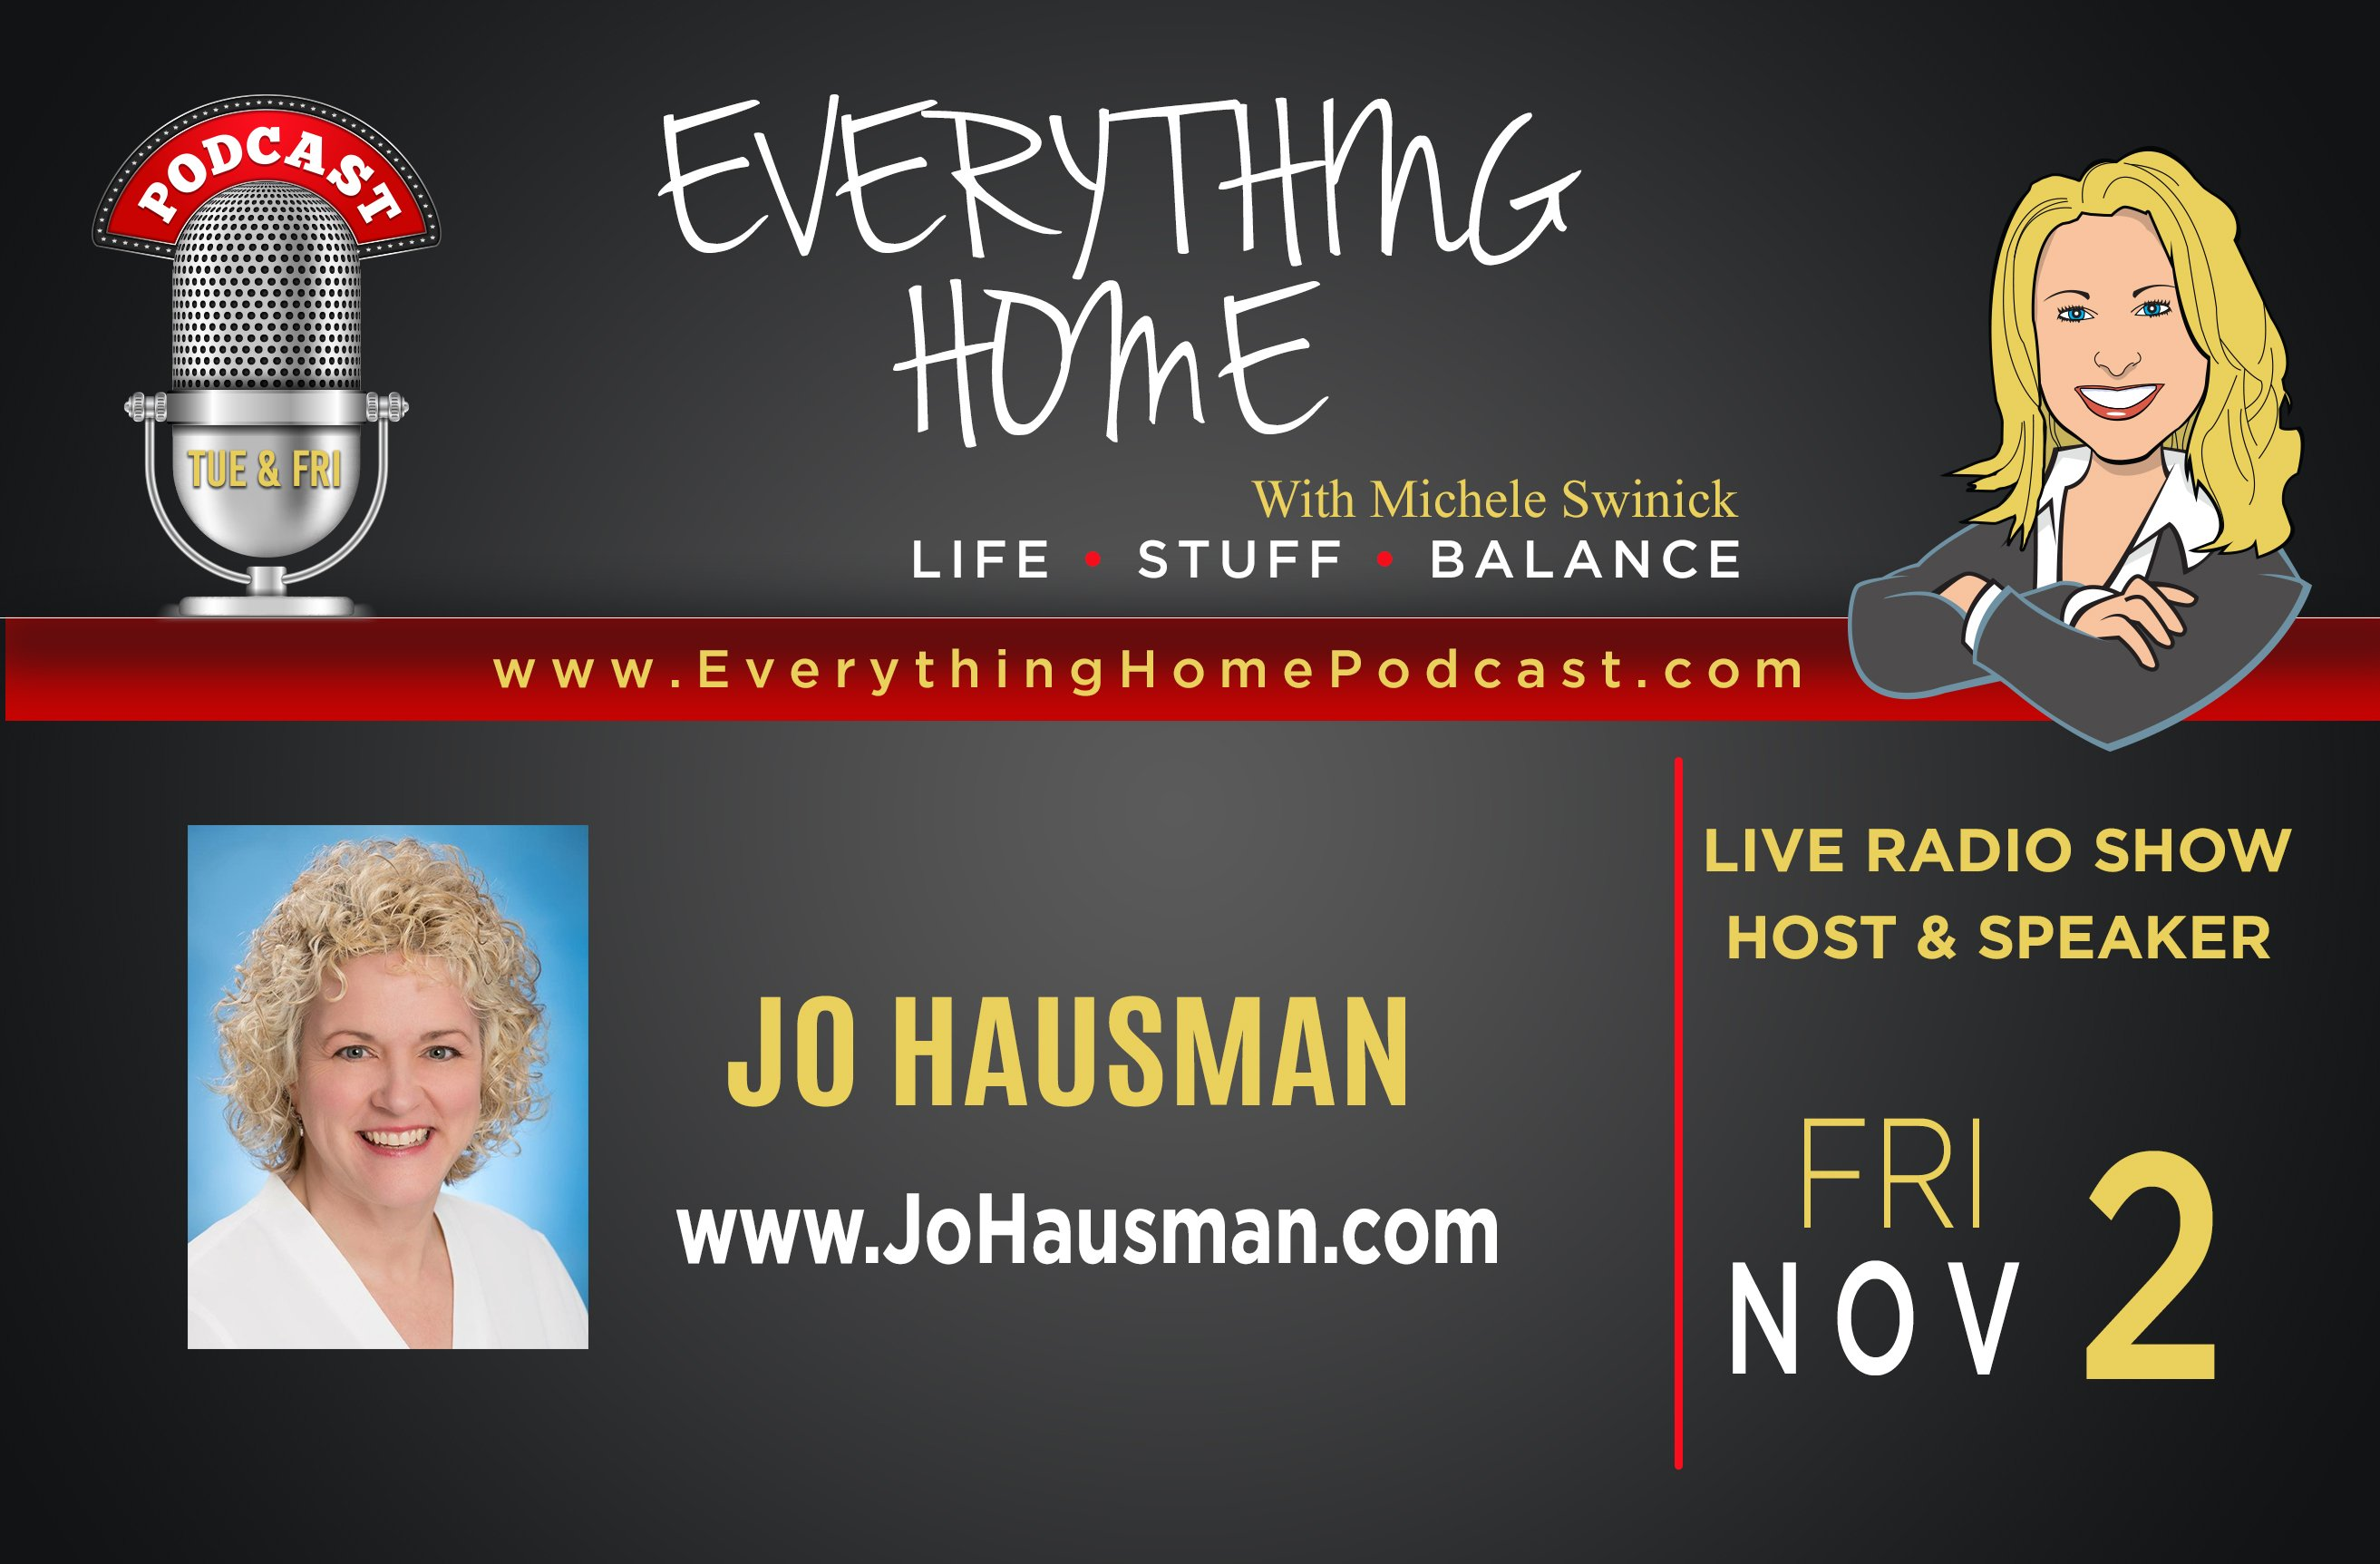 Everything Home Podcast - Jo hausman - Ad Banner - NOV 2